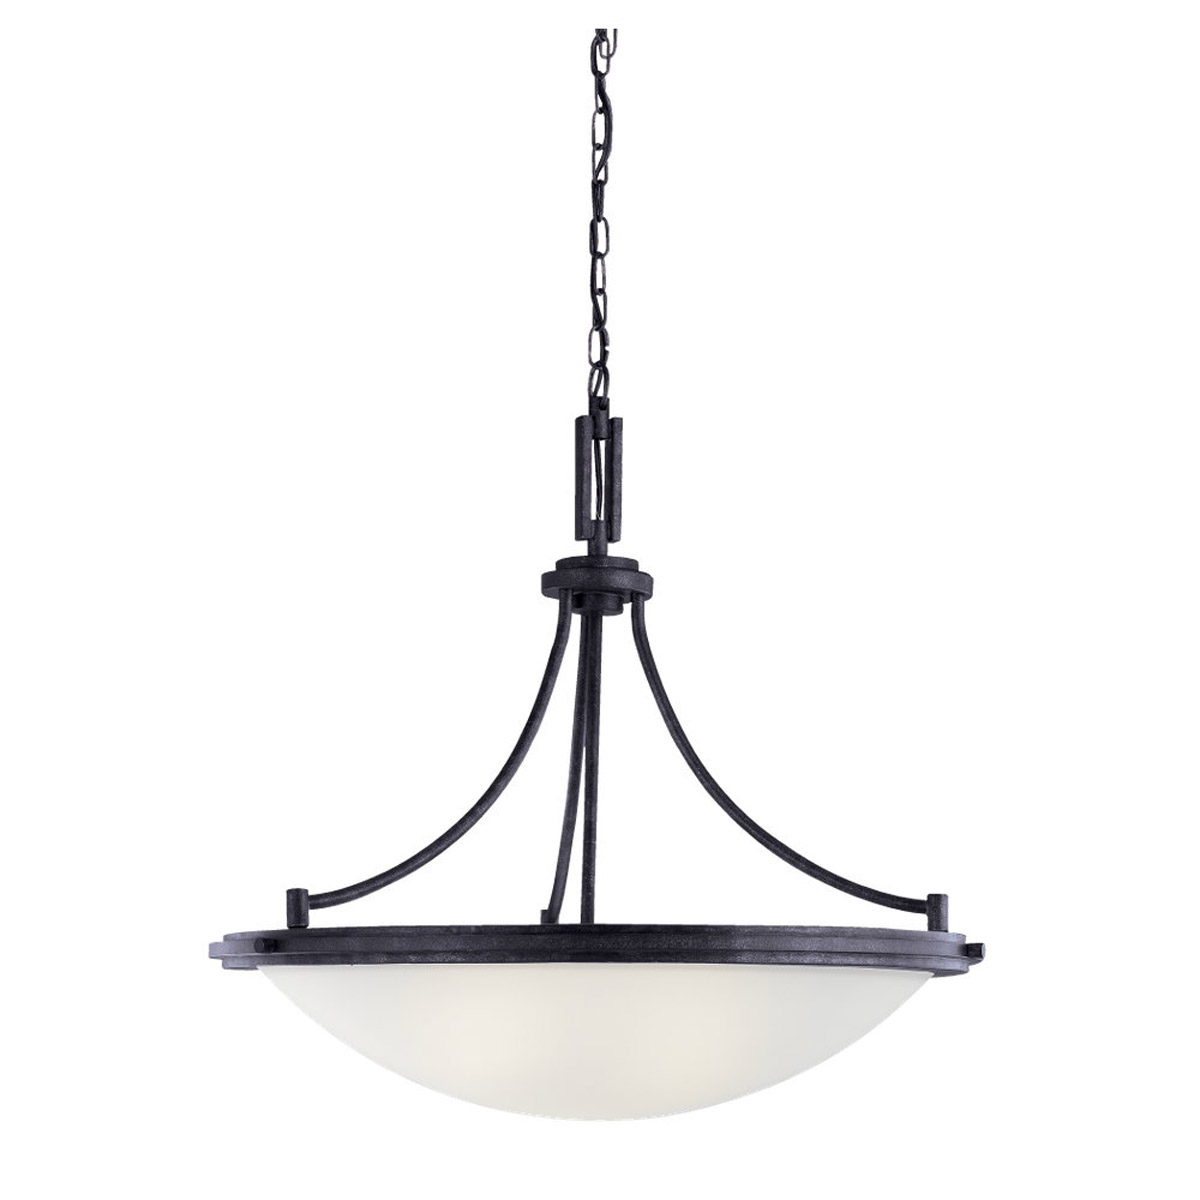 Sea Gull Lighting Winnetka 4 Light Pendant in Blacksmith 65662-839